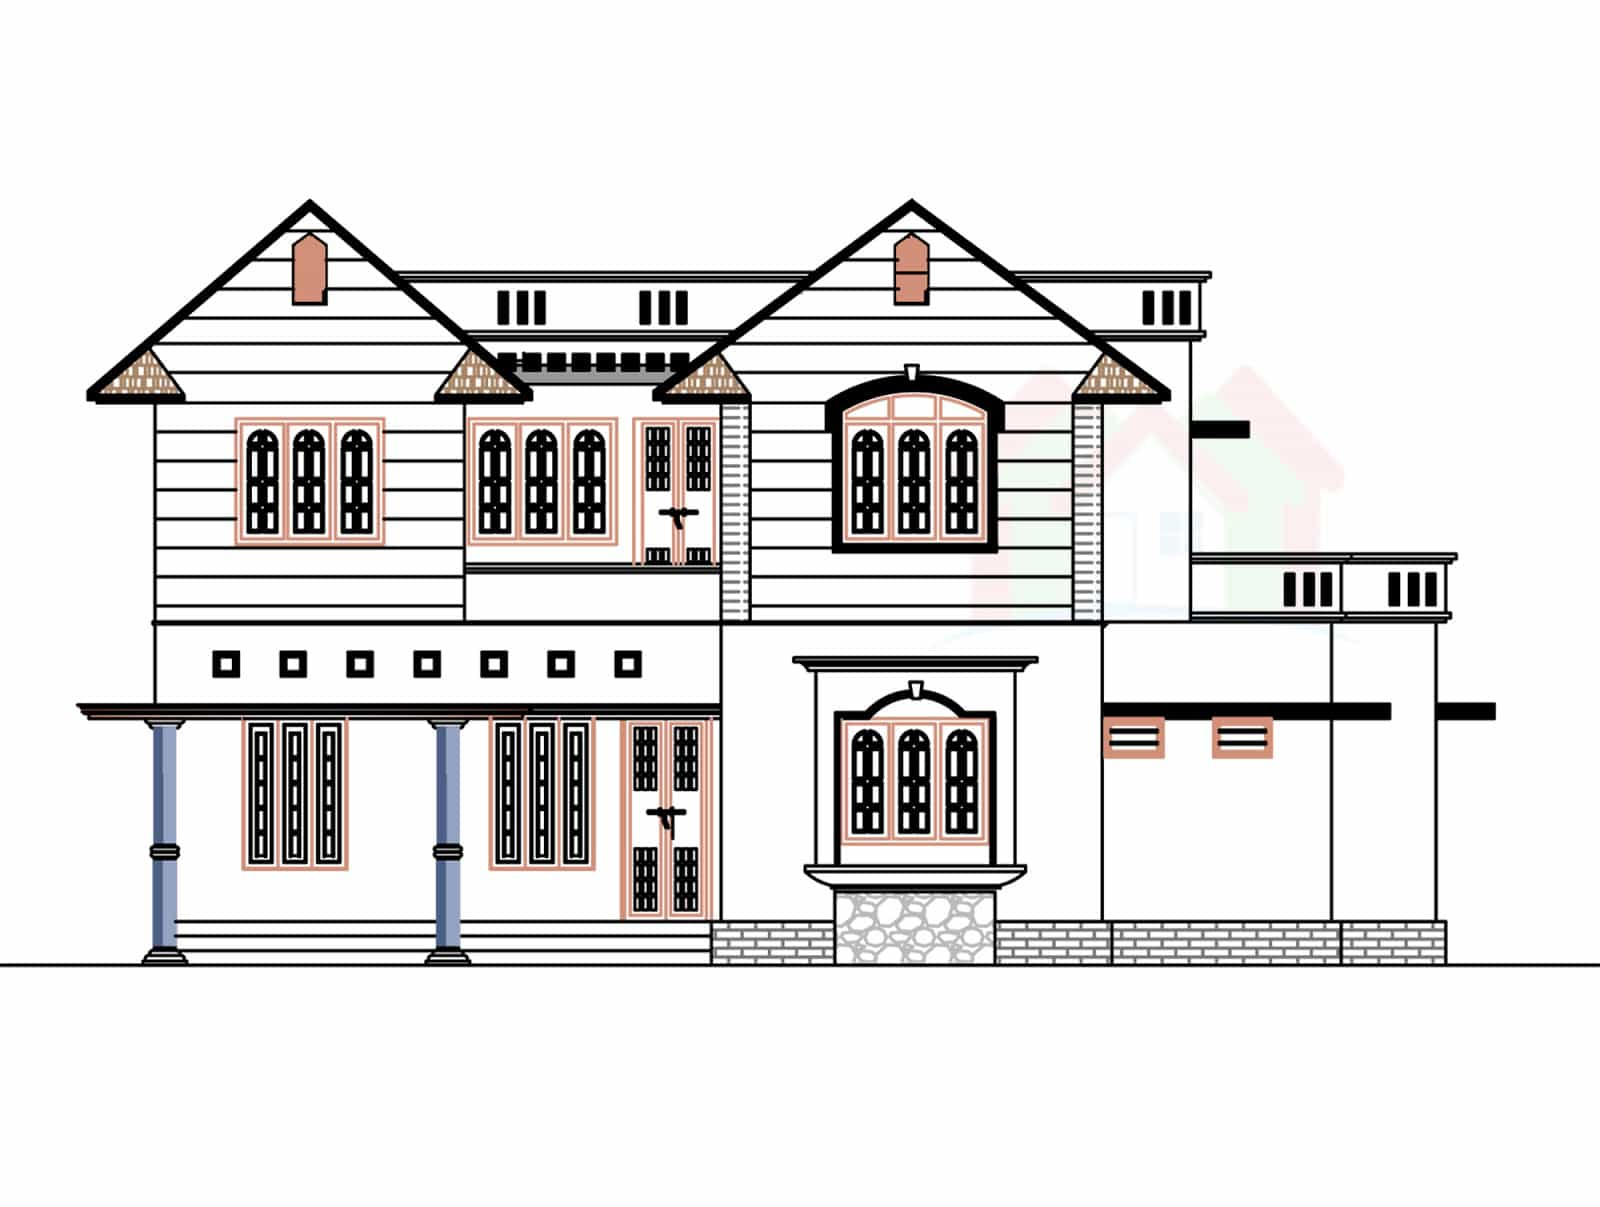 2226 house design with kerala house plans for Kerala house plan images